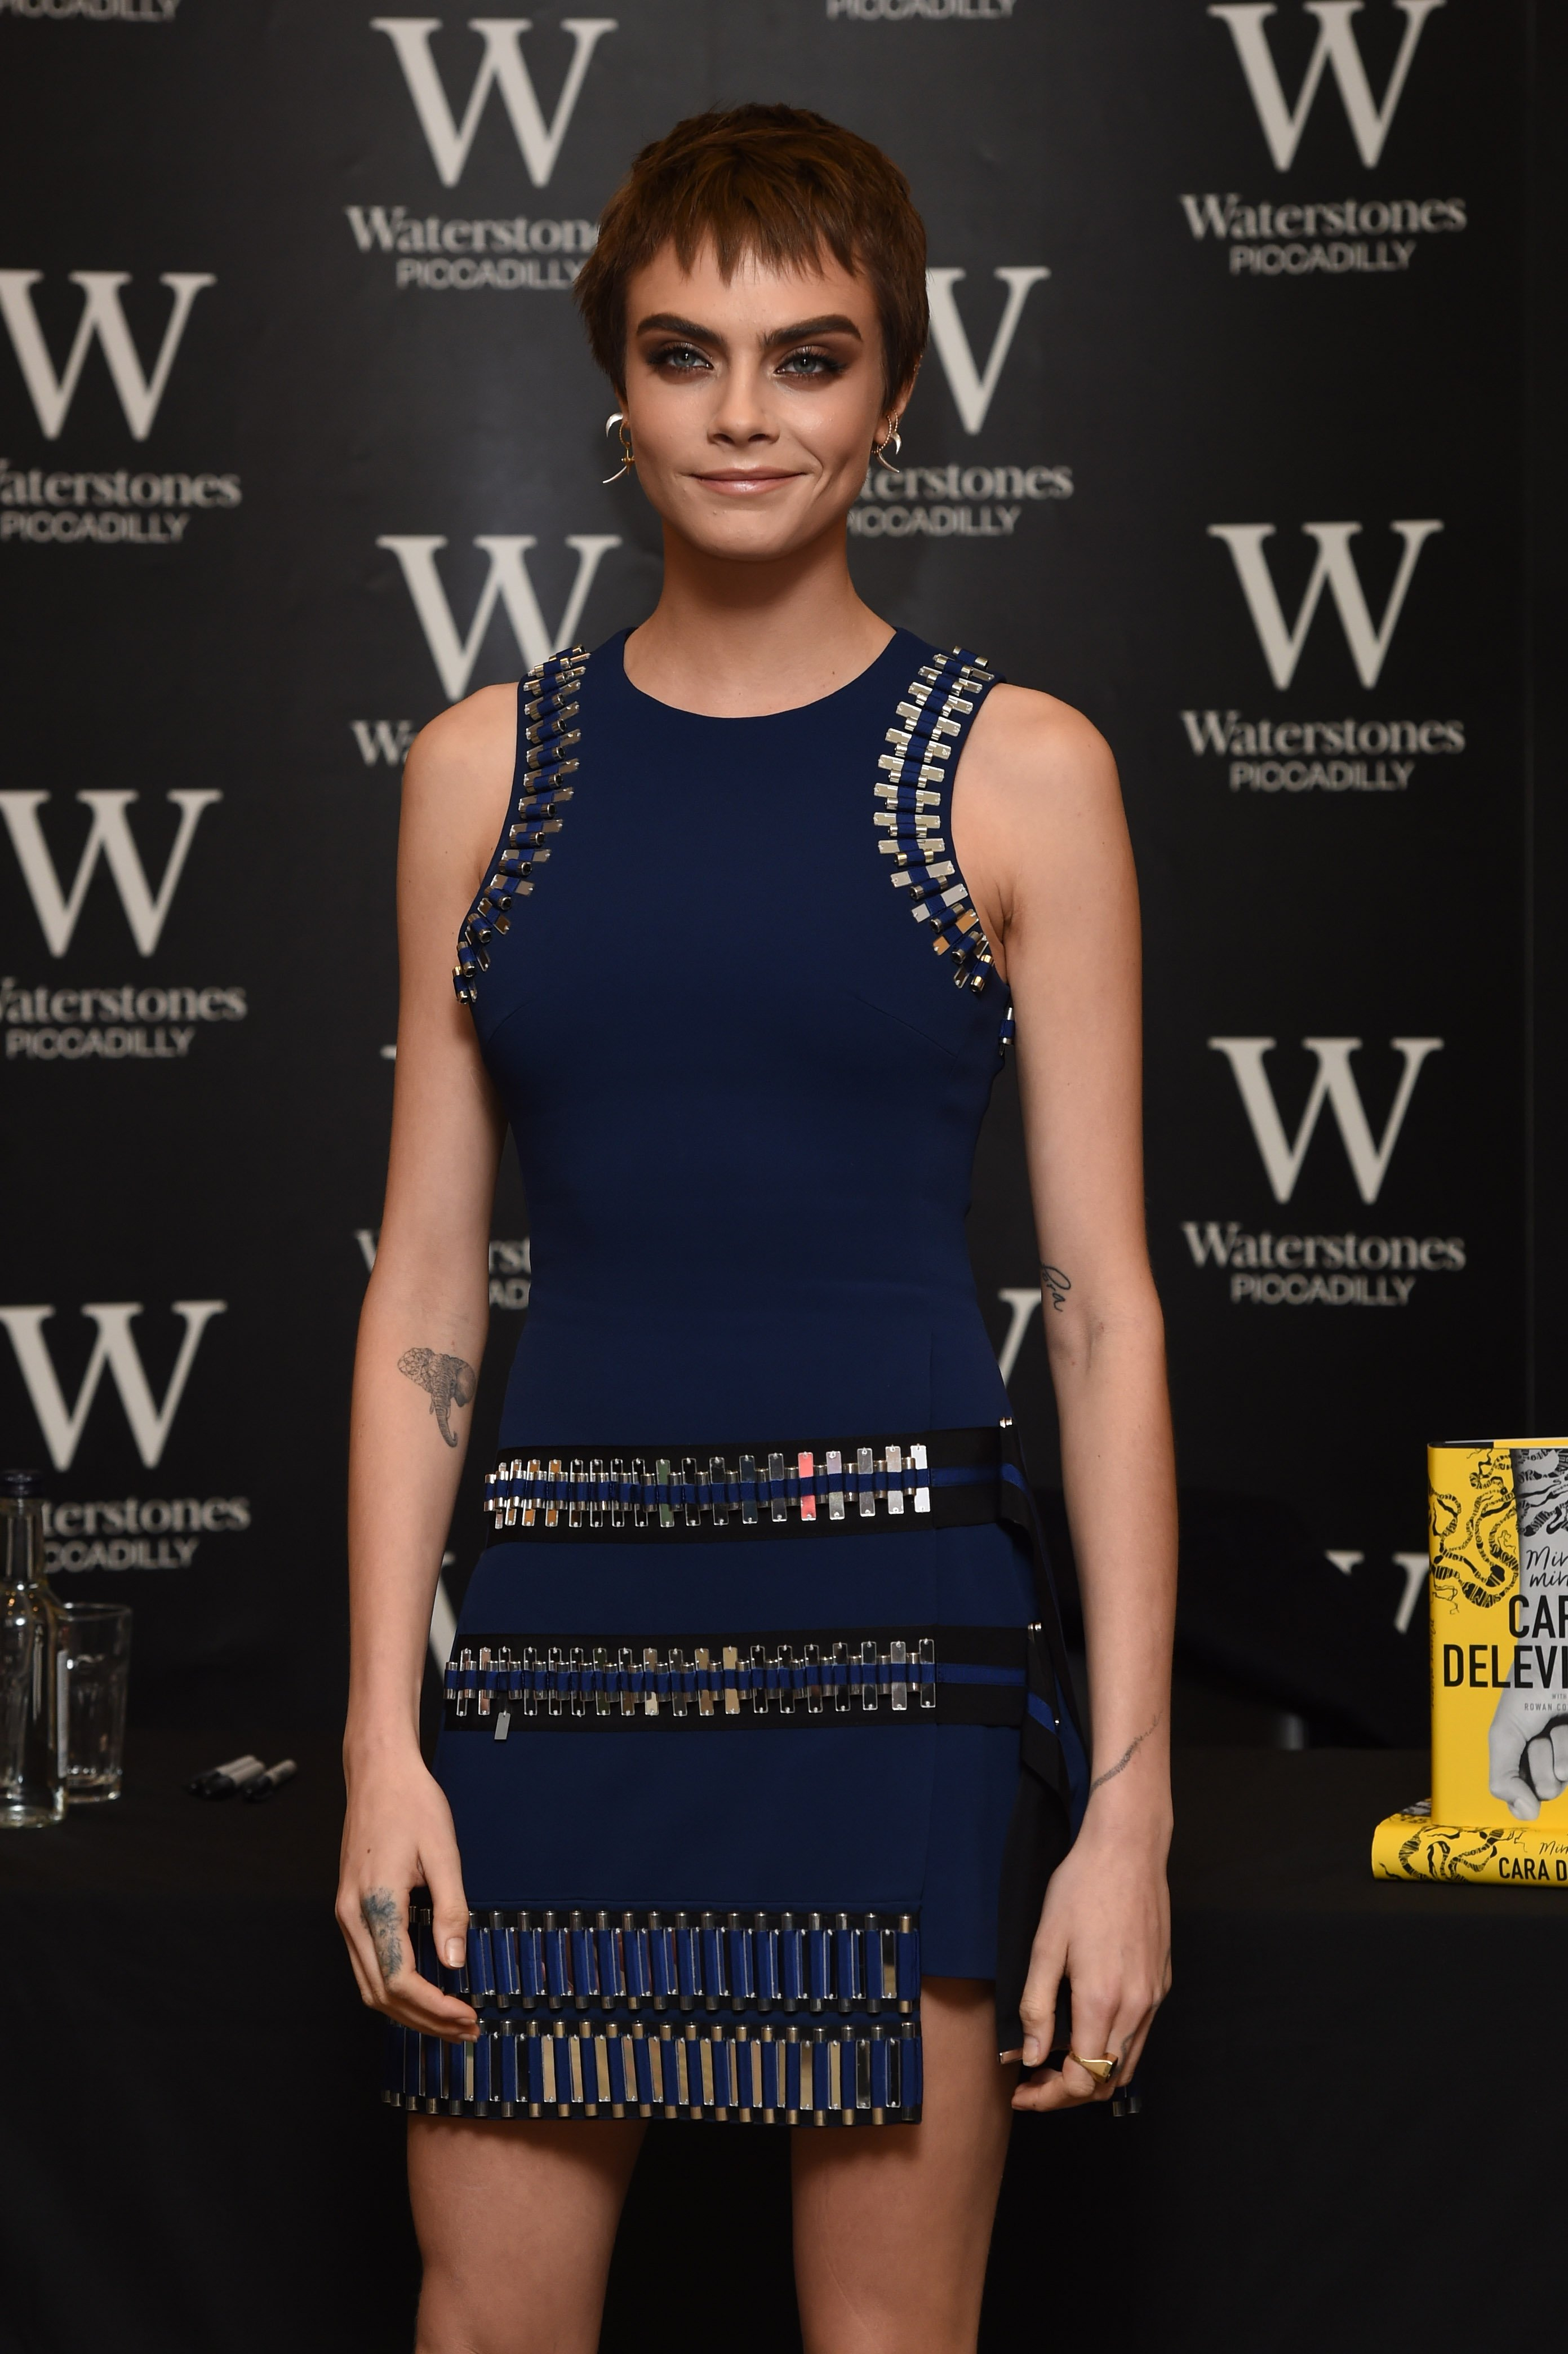 4 October 2017.  Cara Delevingne - book signing held at Waterstones Piccadilly, 203-206 Piccadilly, London.  Here:  Cara Delevingne, Image: 351838674, License: Rights-managed, Restrictions: , Model Release: no, Credit line: Profimedia, Goff Photos